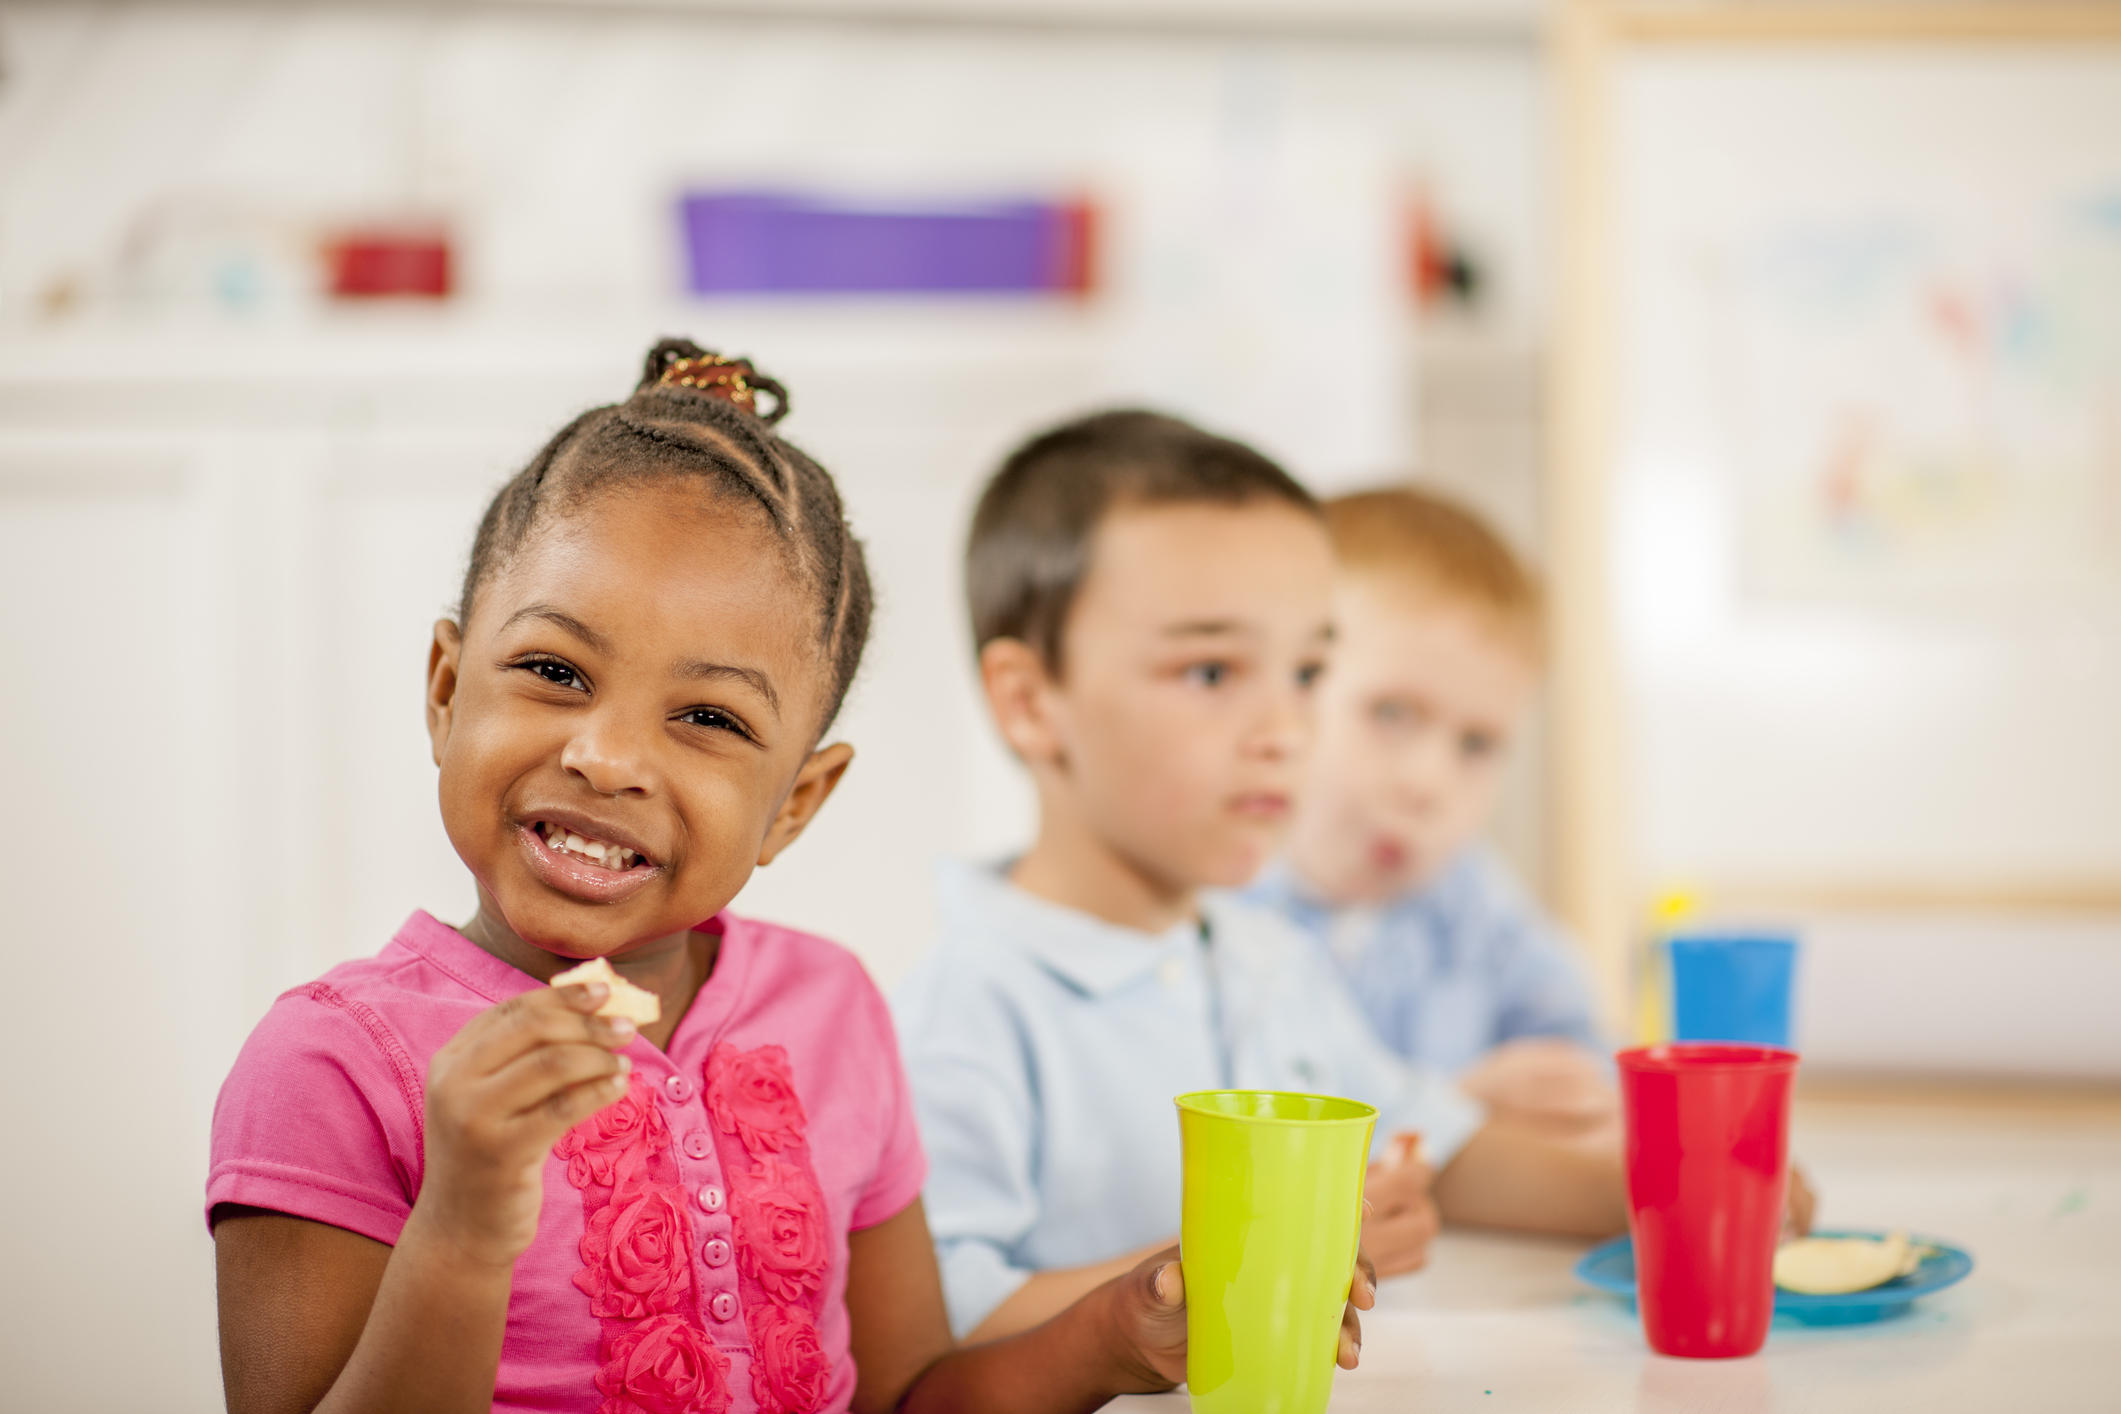 A  group of elementary age children are sitting at a table eating lunch together. One girl is smiling and looking at the camera.